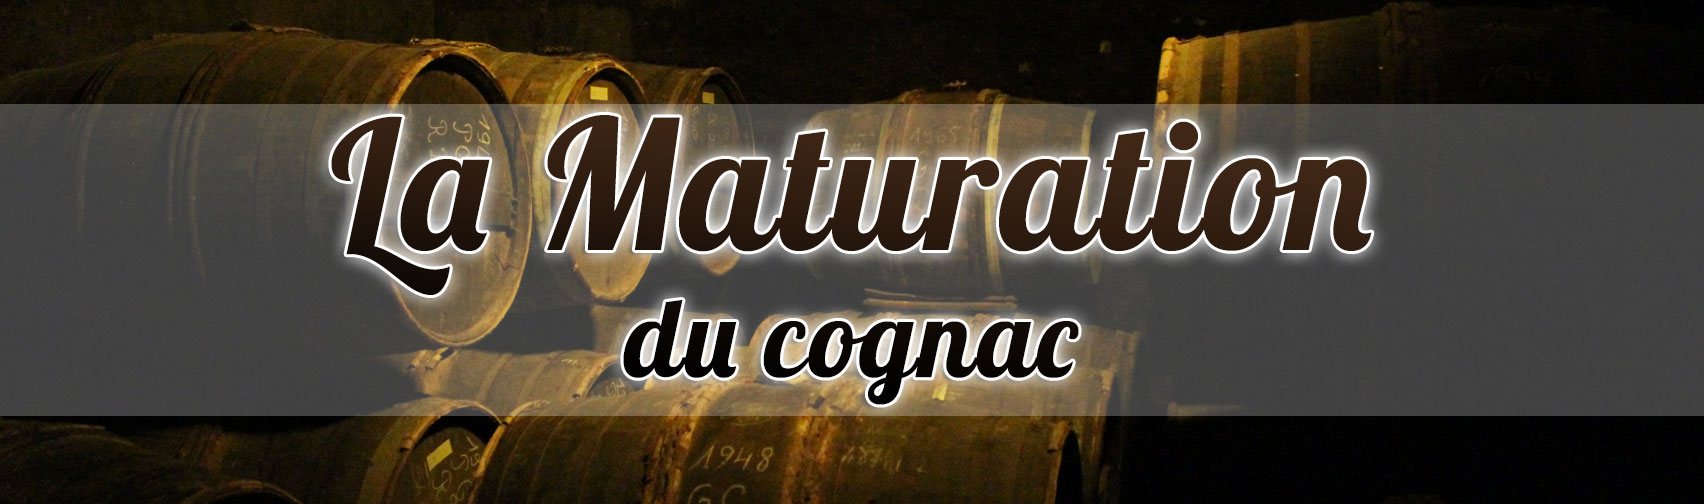 La maturation du cognac